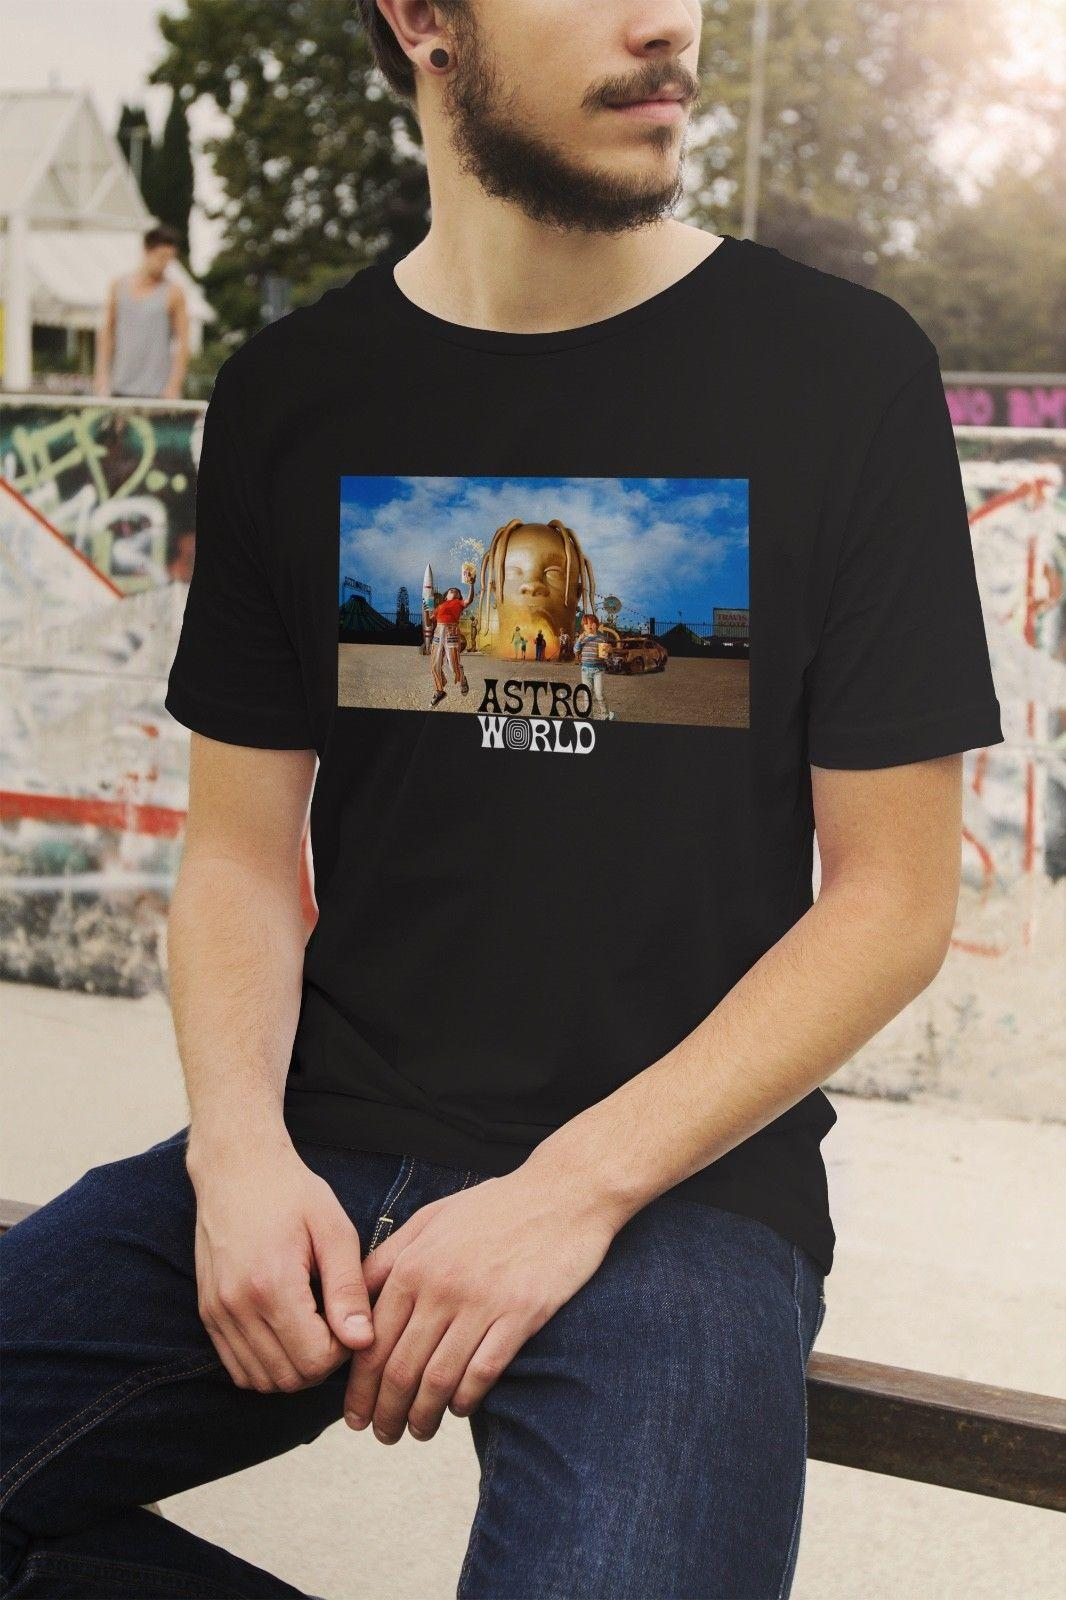 adfc4f161447 Travis Scott Astroworld T Shirt Drake Kylie Jenner Sicko Mode Merchandise  Funny Unisex Tee Awesome Cheap T Shirts Online Shopping For T Shirt From  Stshirt, ...